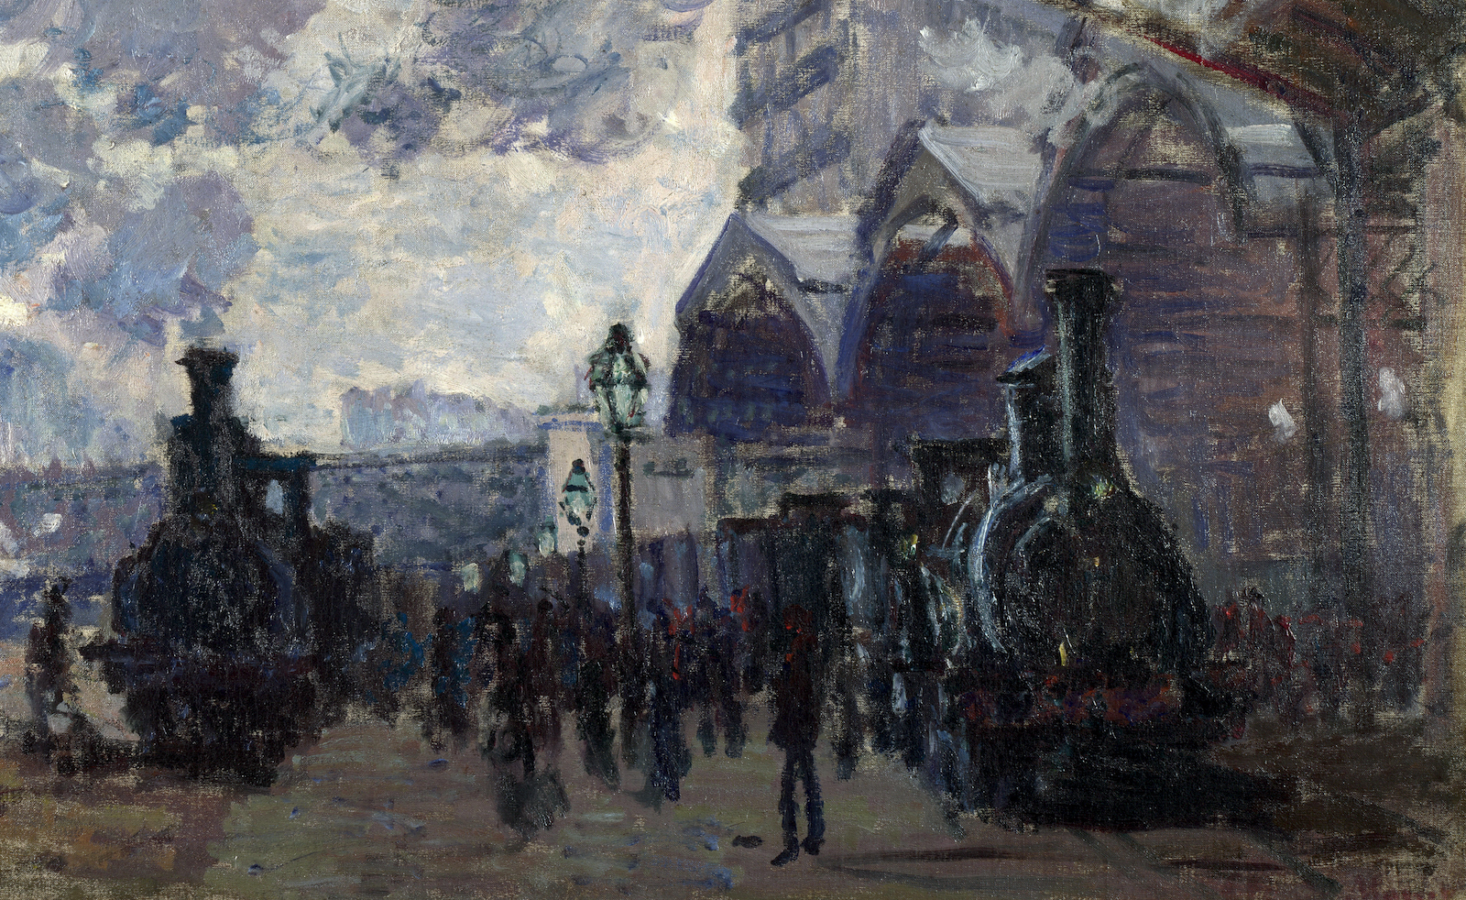 Claude Monet, The Gare St-Lazare, detail, 1877, The National Gallery, London.